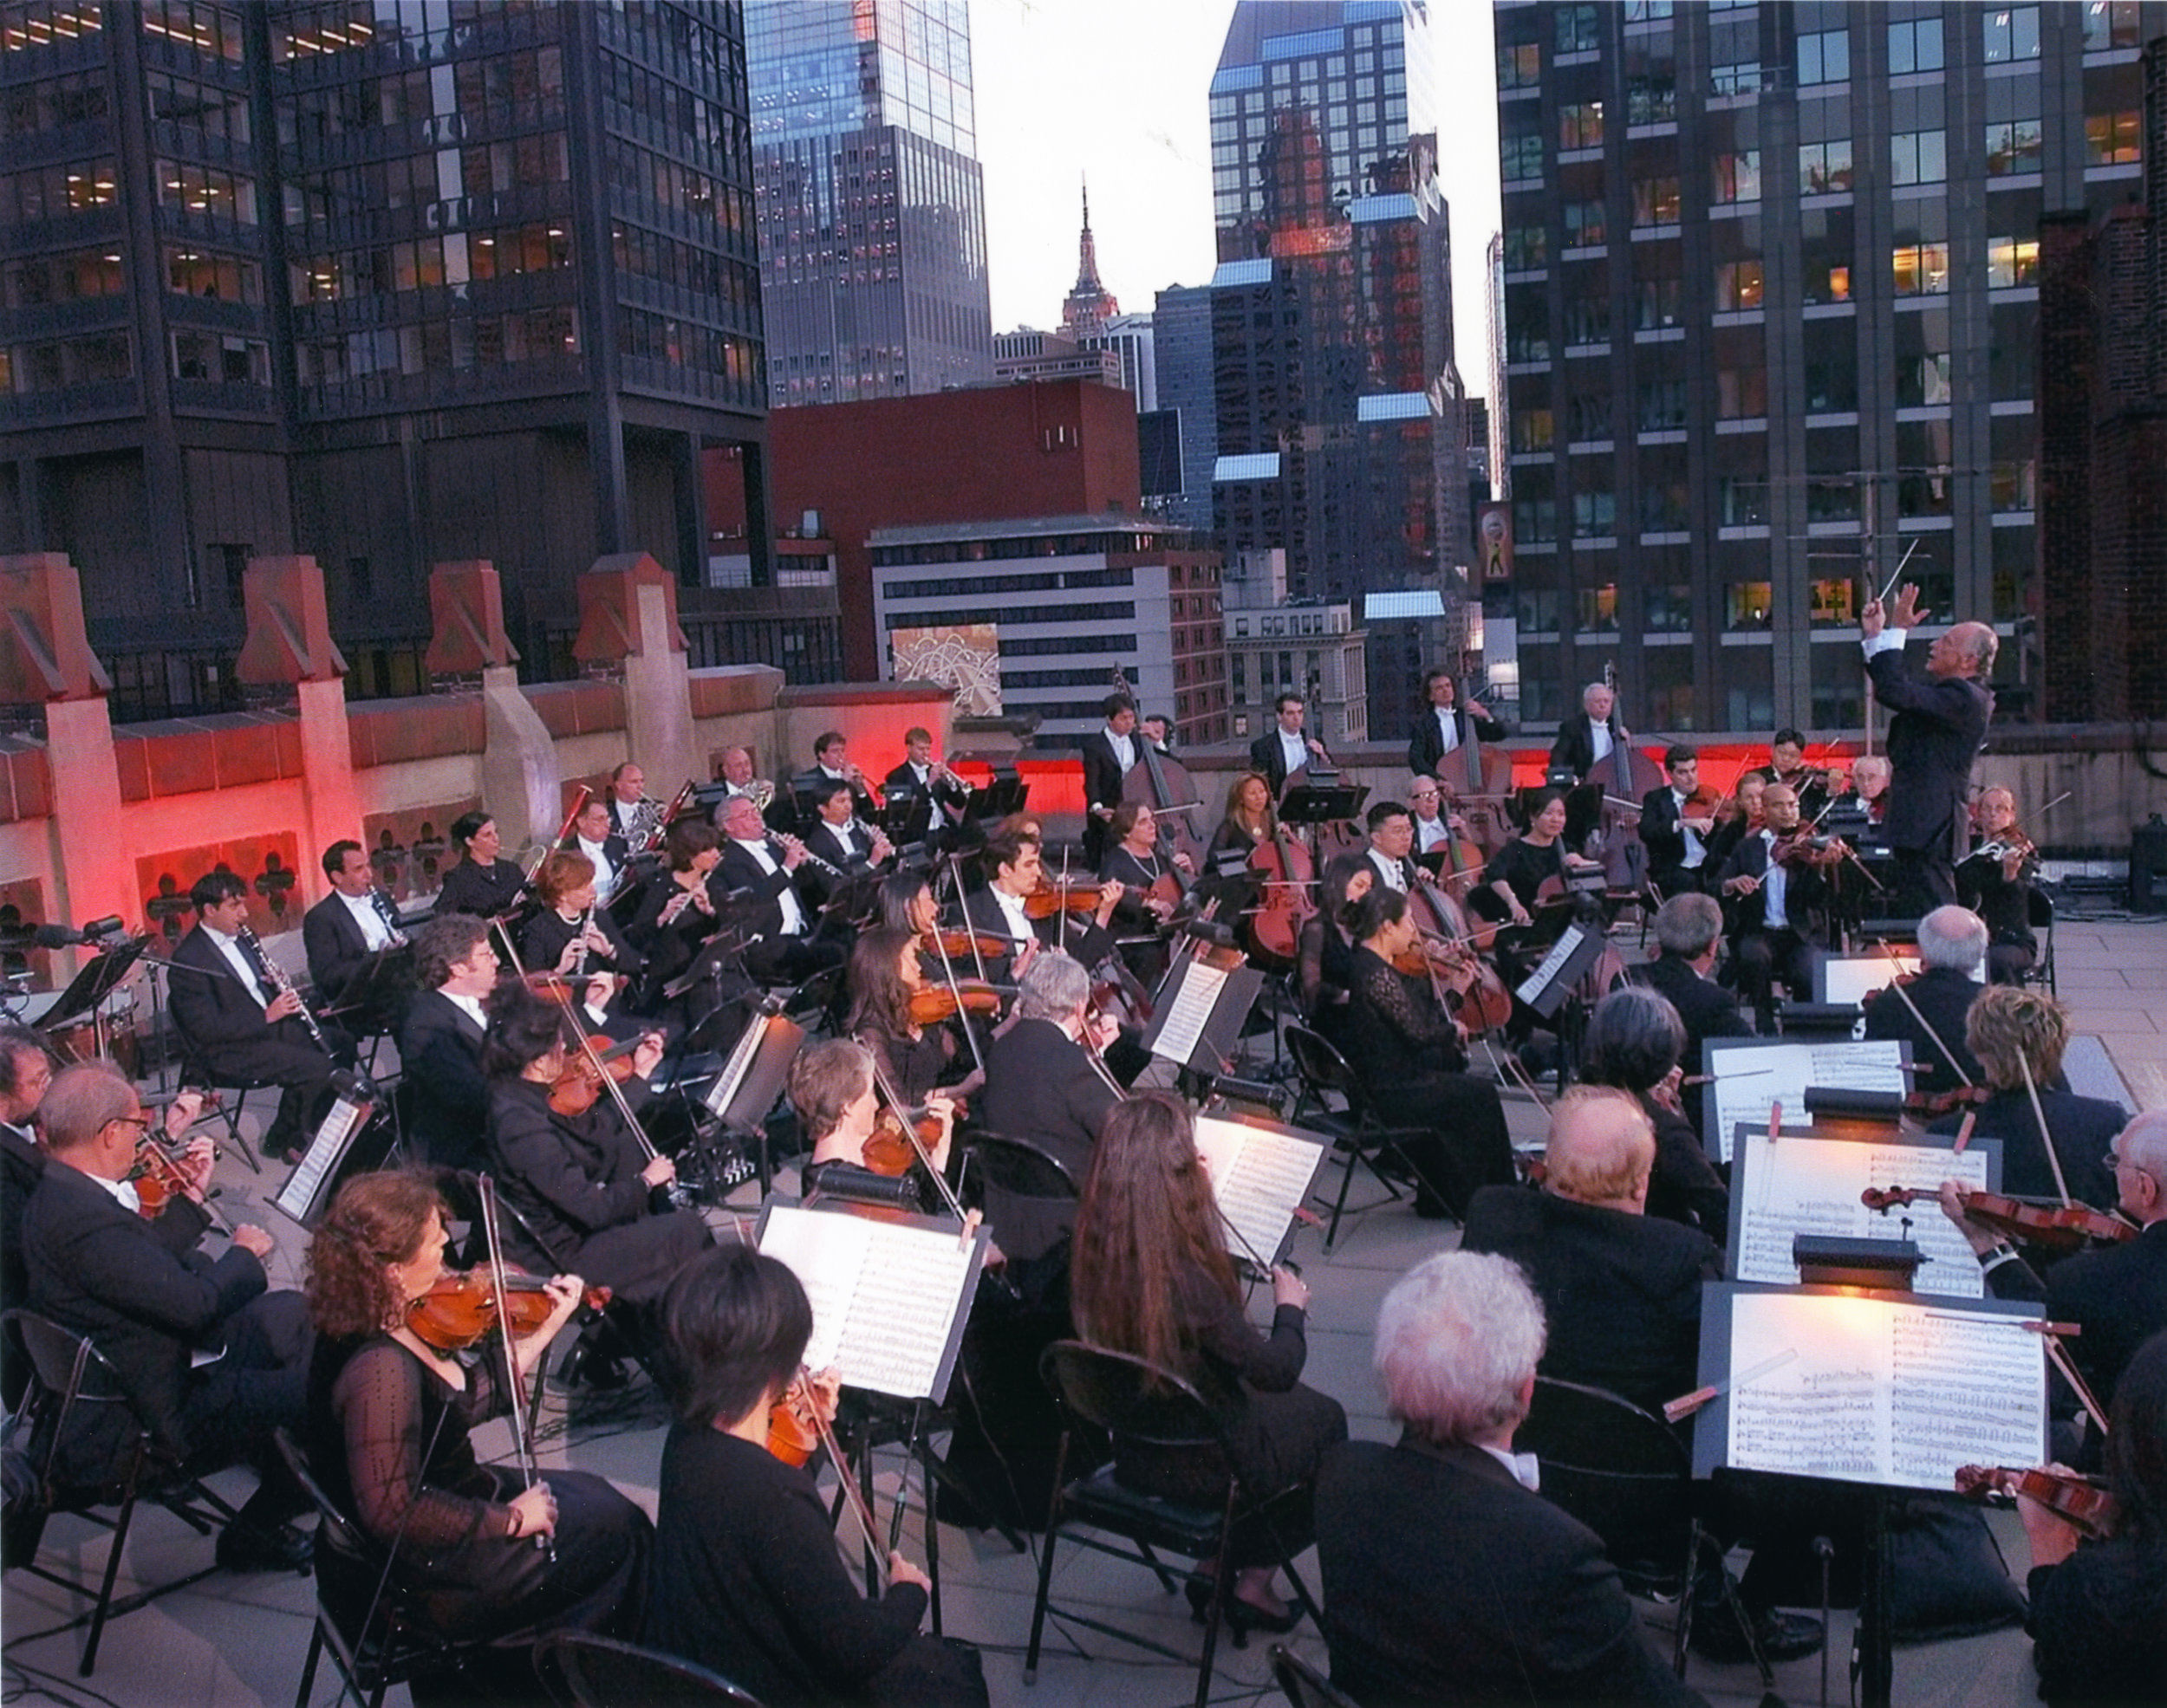 orchestra on roof062.jpg